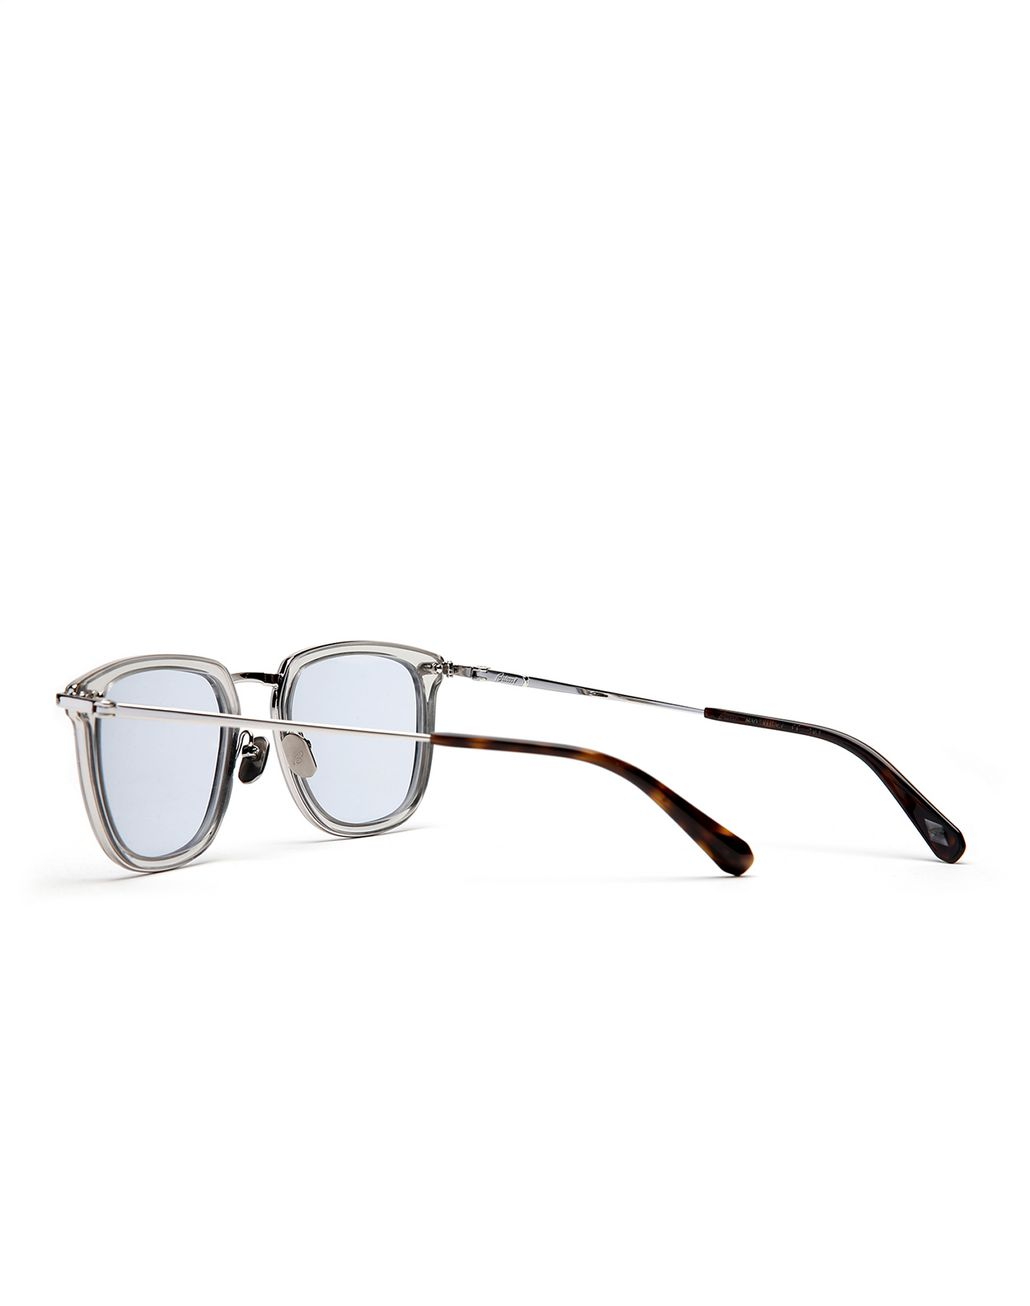 BRIONI Transparent Sunglasses with Light Blue Lenses  Sunglasses [*** pickupInStoreShippingNotGuaranteed_info ***] d